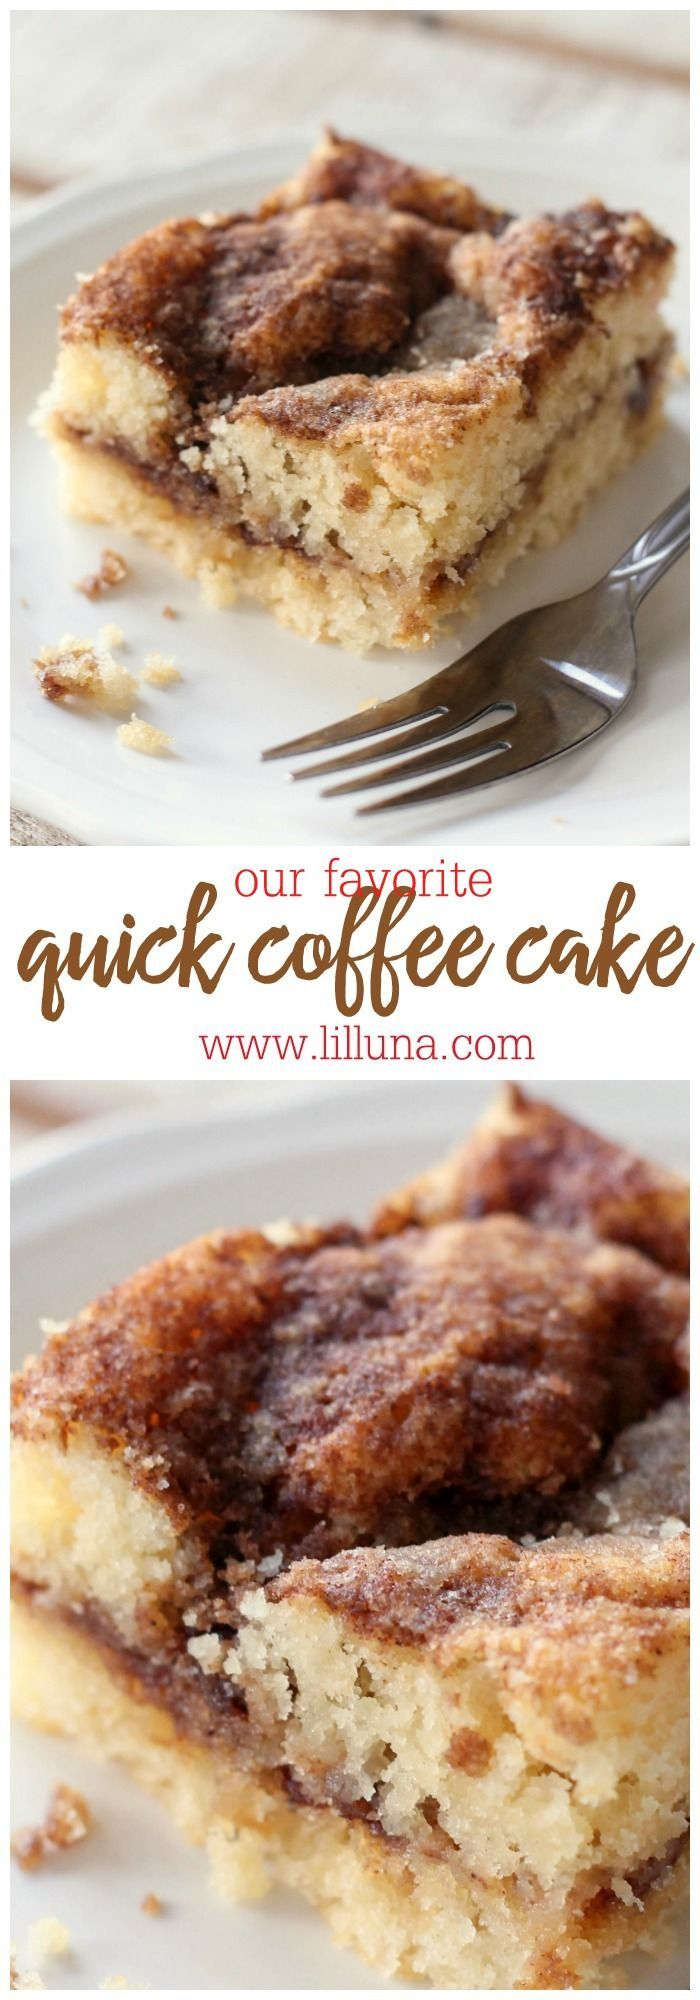 The BEST and EASIEST Coffee Cake Recipe! { http://lilluna.com } Super moist and delicious! cake covered in cinnamon and brown sugar!